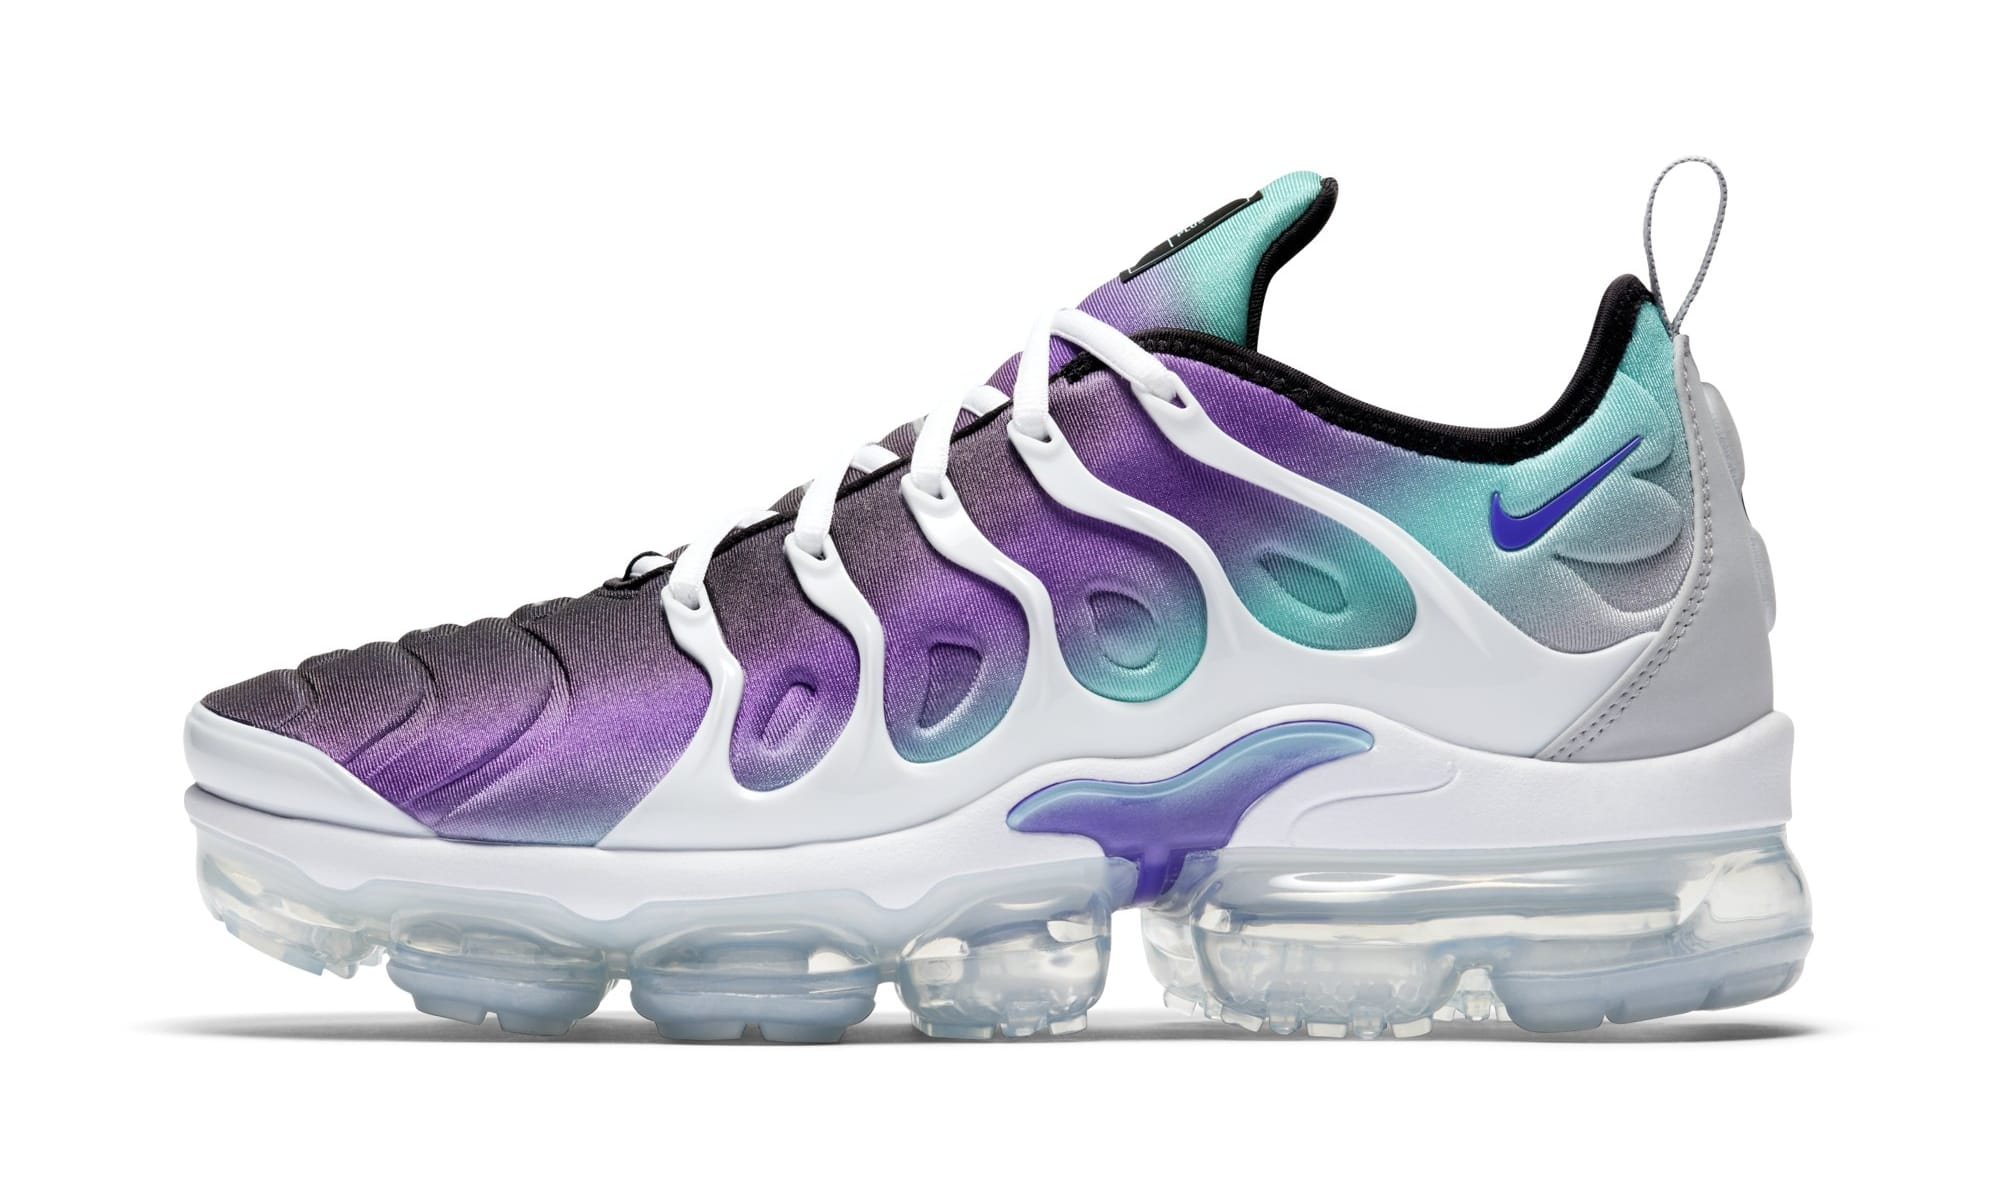 official photos 10551 4e853 Nike Air VaporMax Plus 924453-101 AO4550-003 924453-009 ...